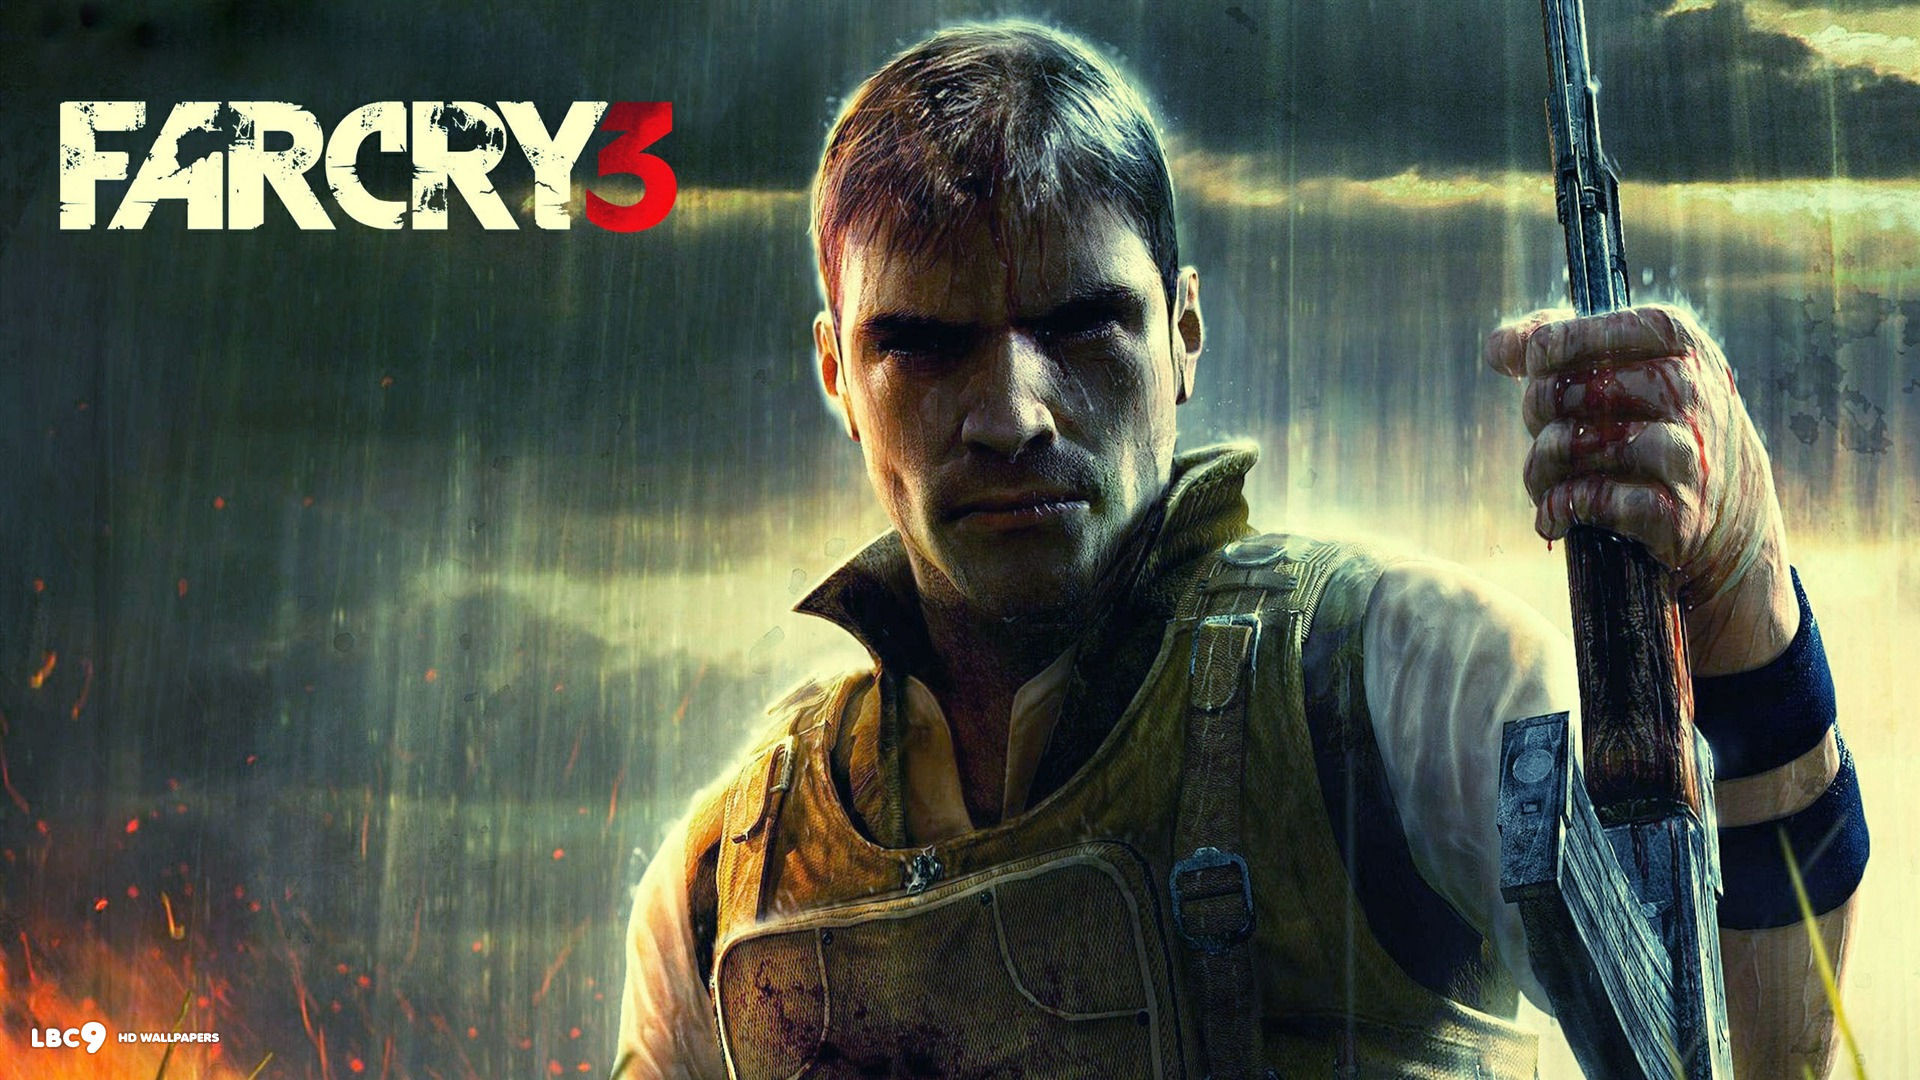 2012 far cry 3 game hd download